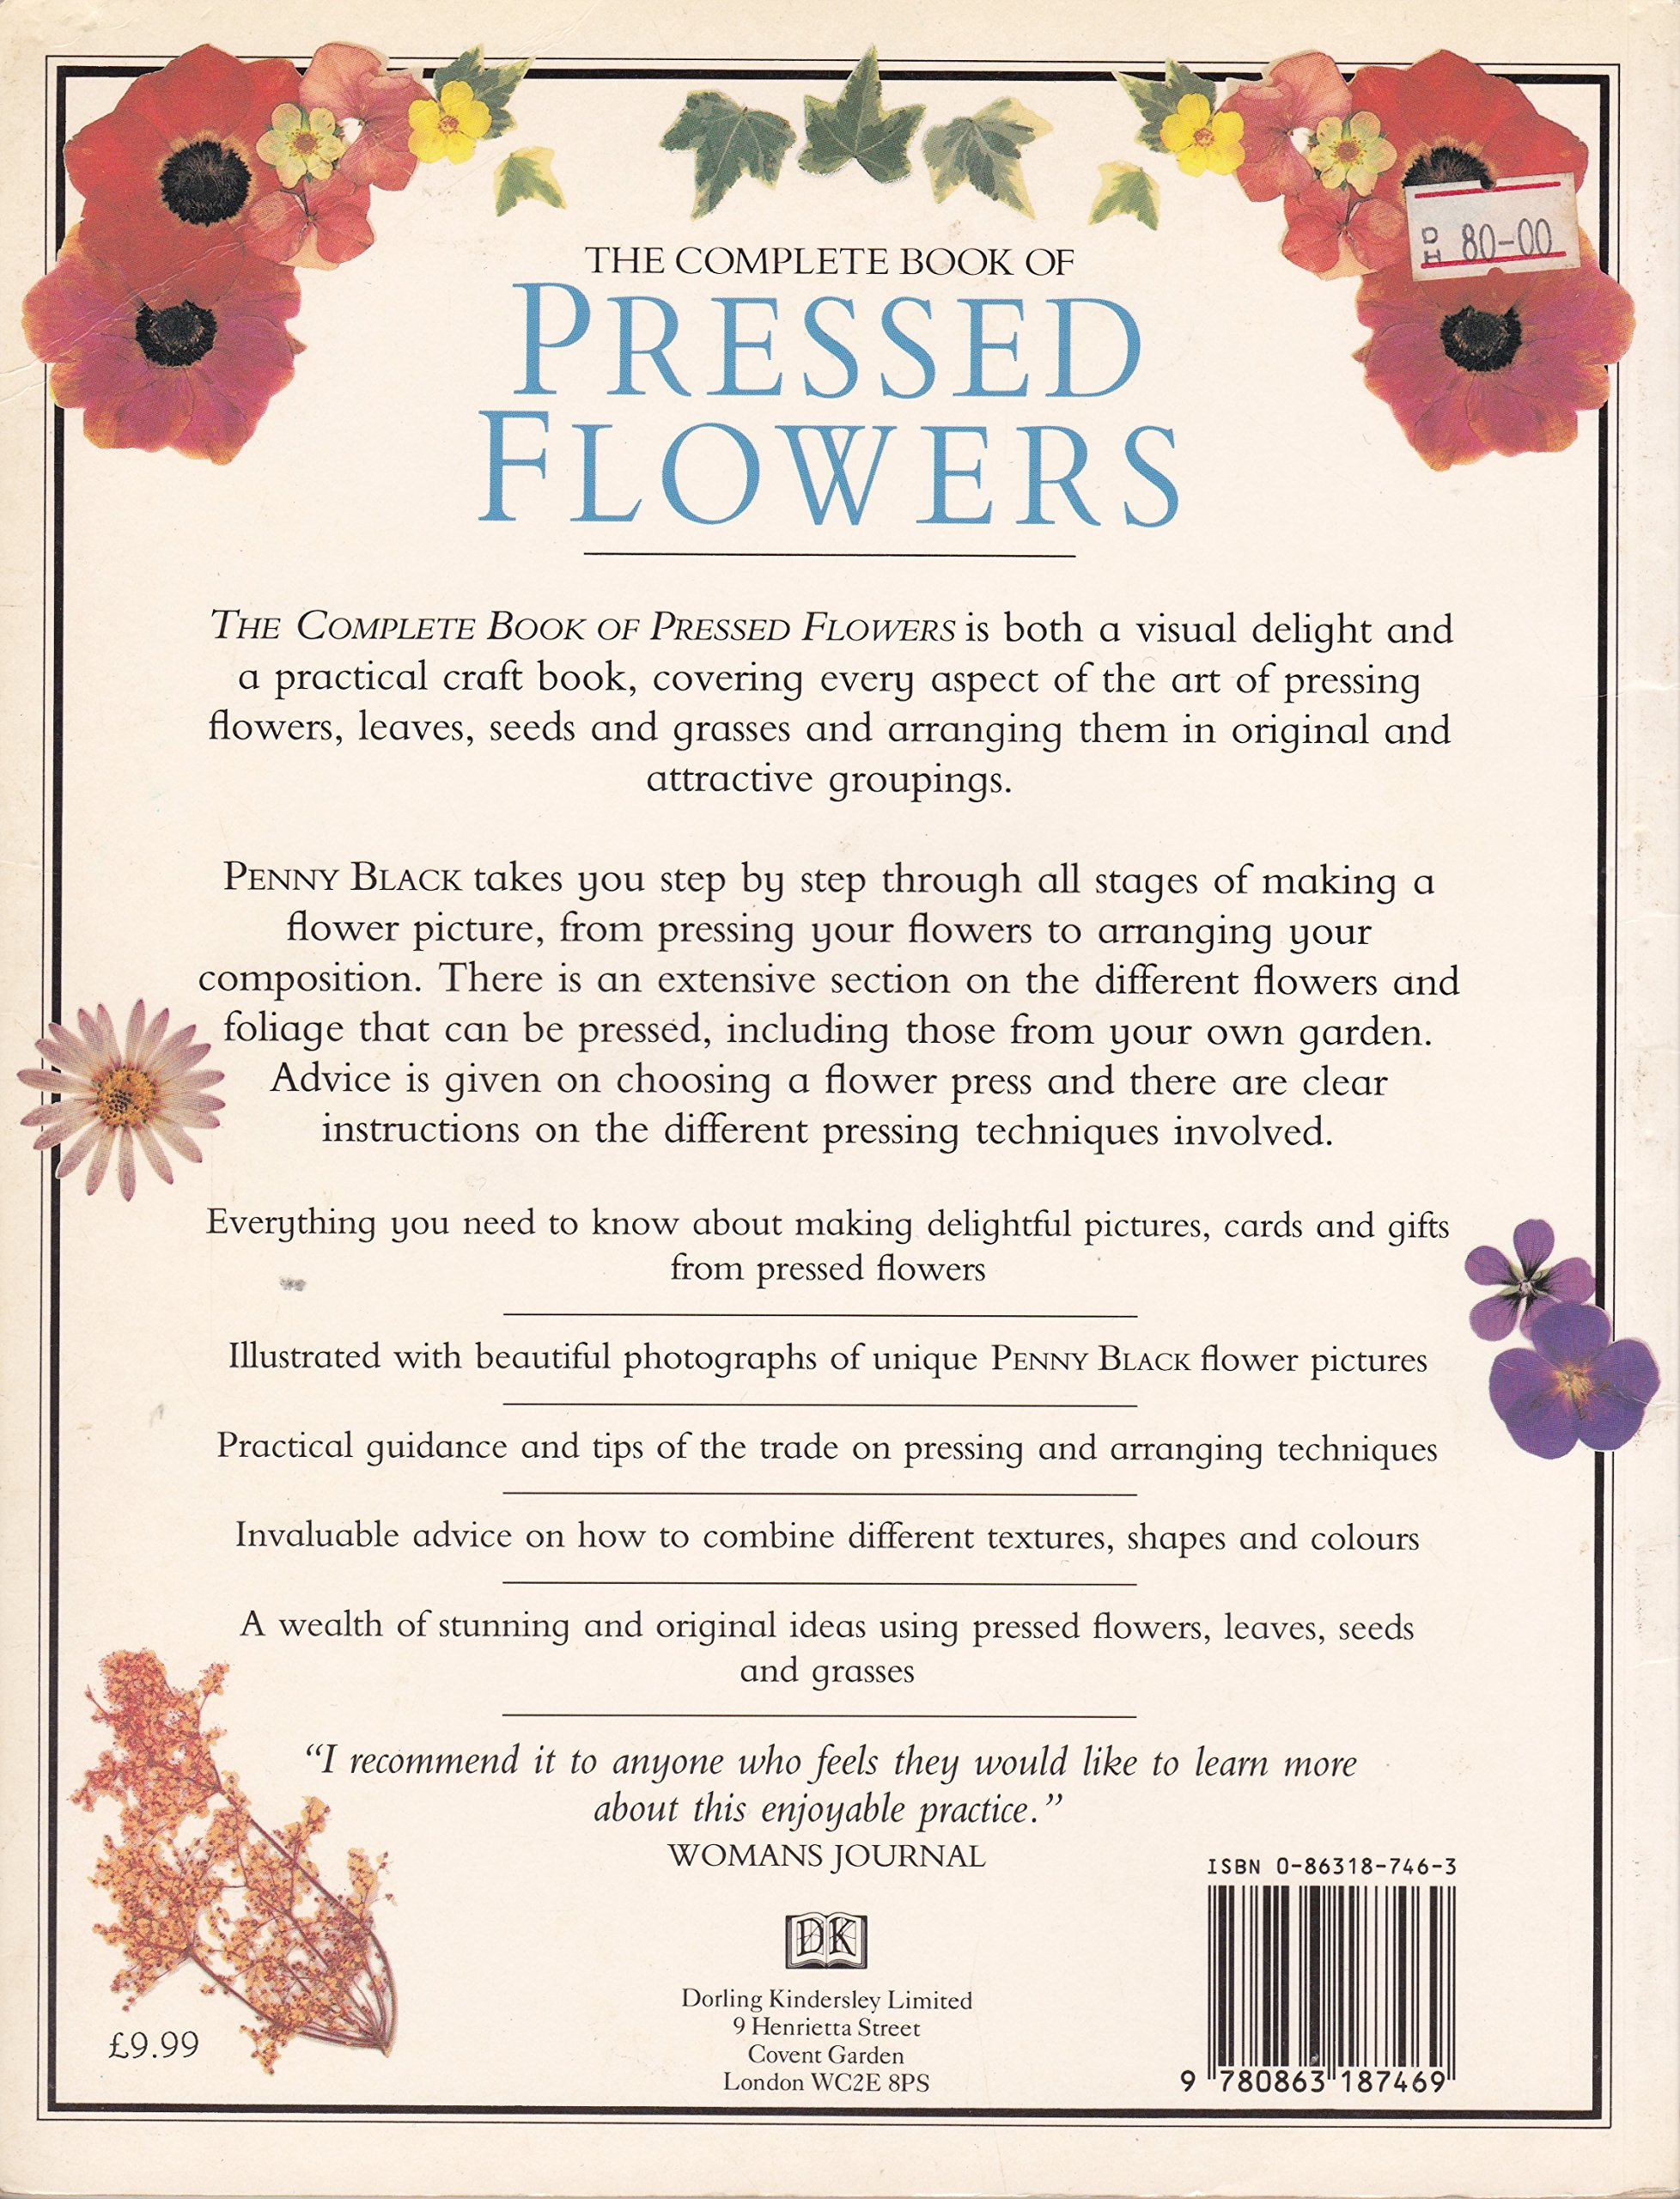 The Complete Book Of Pressed Flowers Penny Black 9780863187469